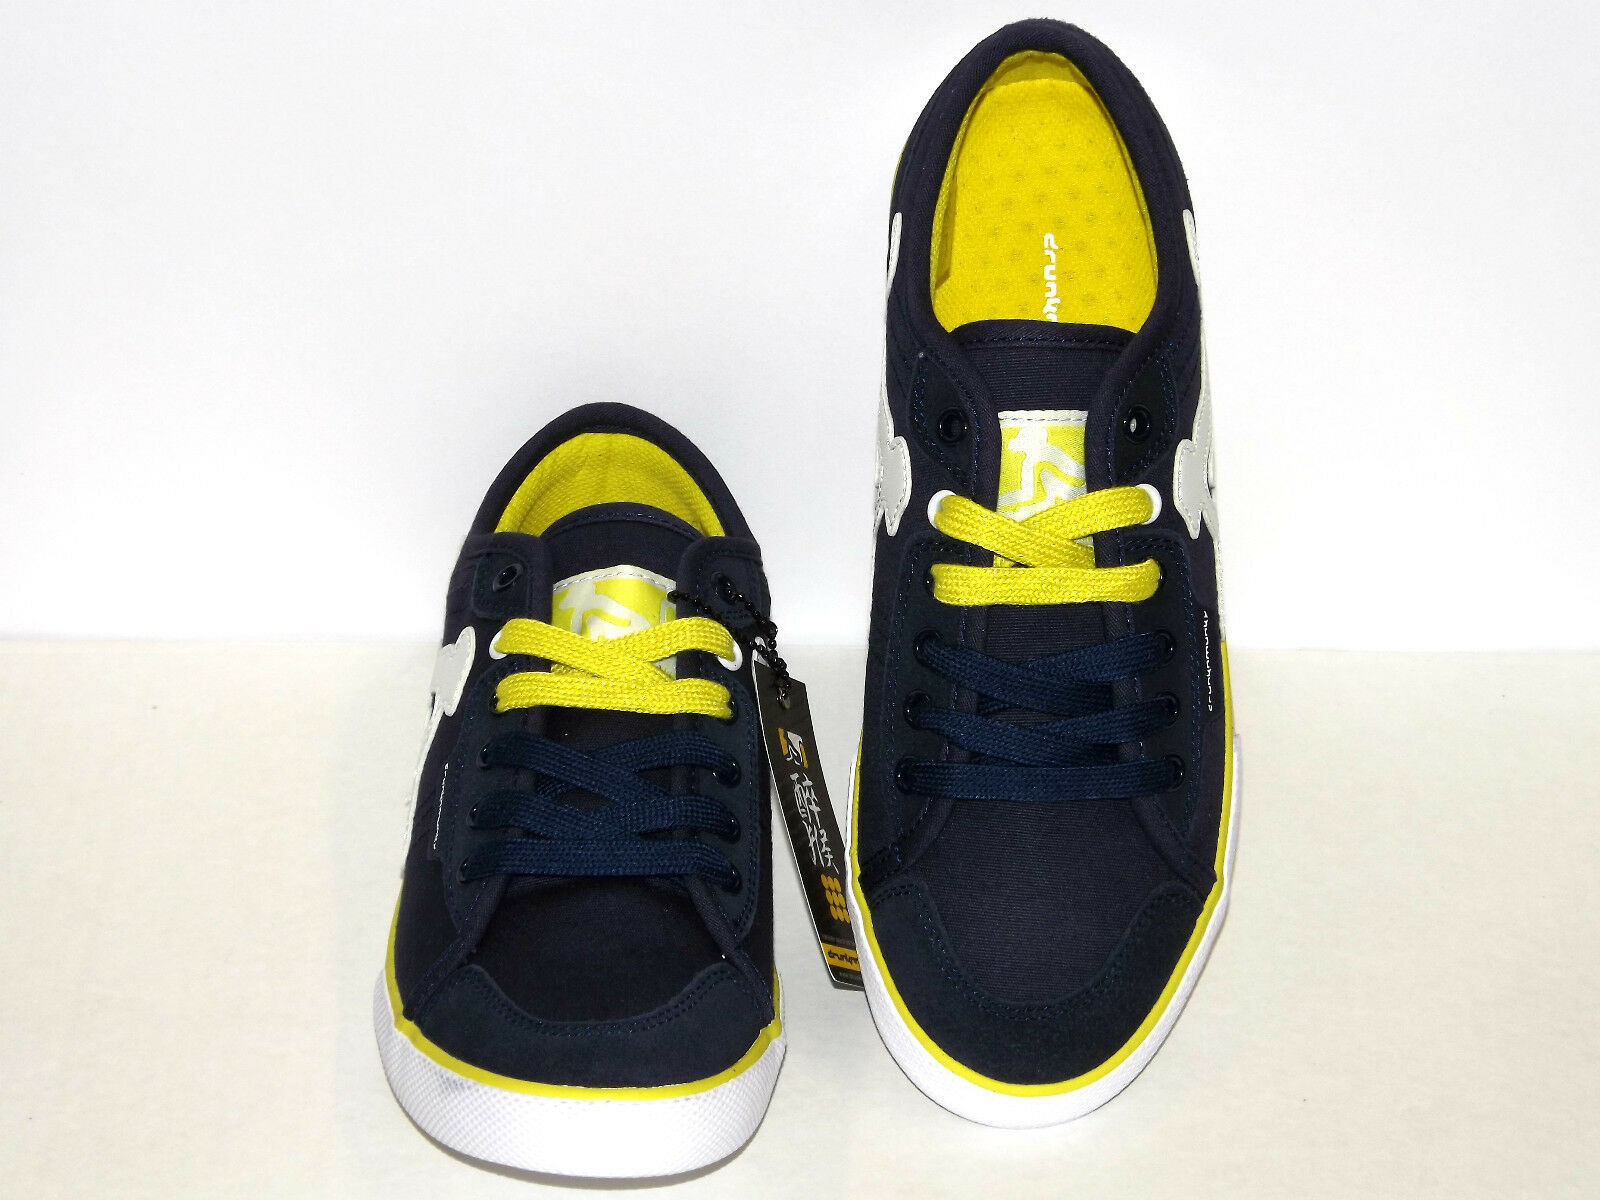 -20% NEW DRUNKNMUNKY schuhe BASSE SNEAKERS NEW -20% ENGLAND 36 37 38 39 40 44 45 753f31